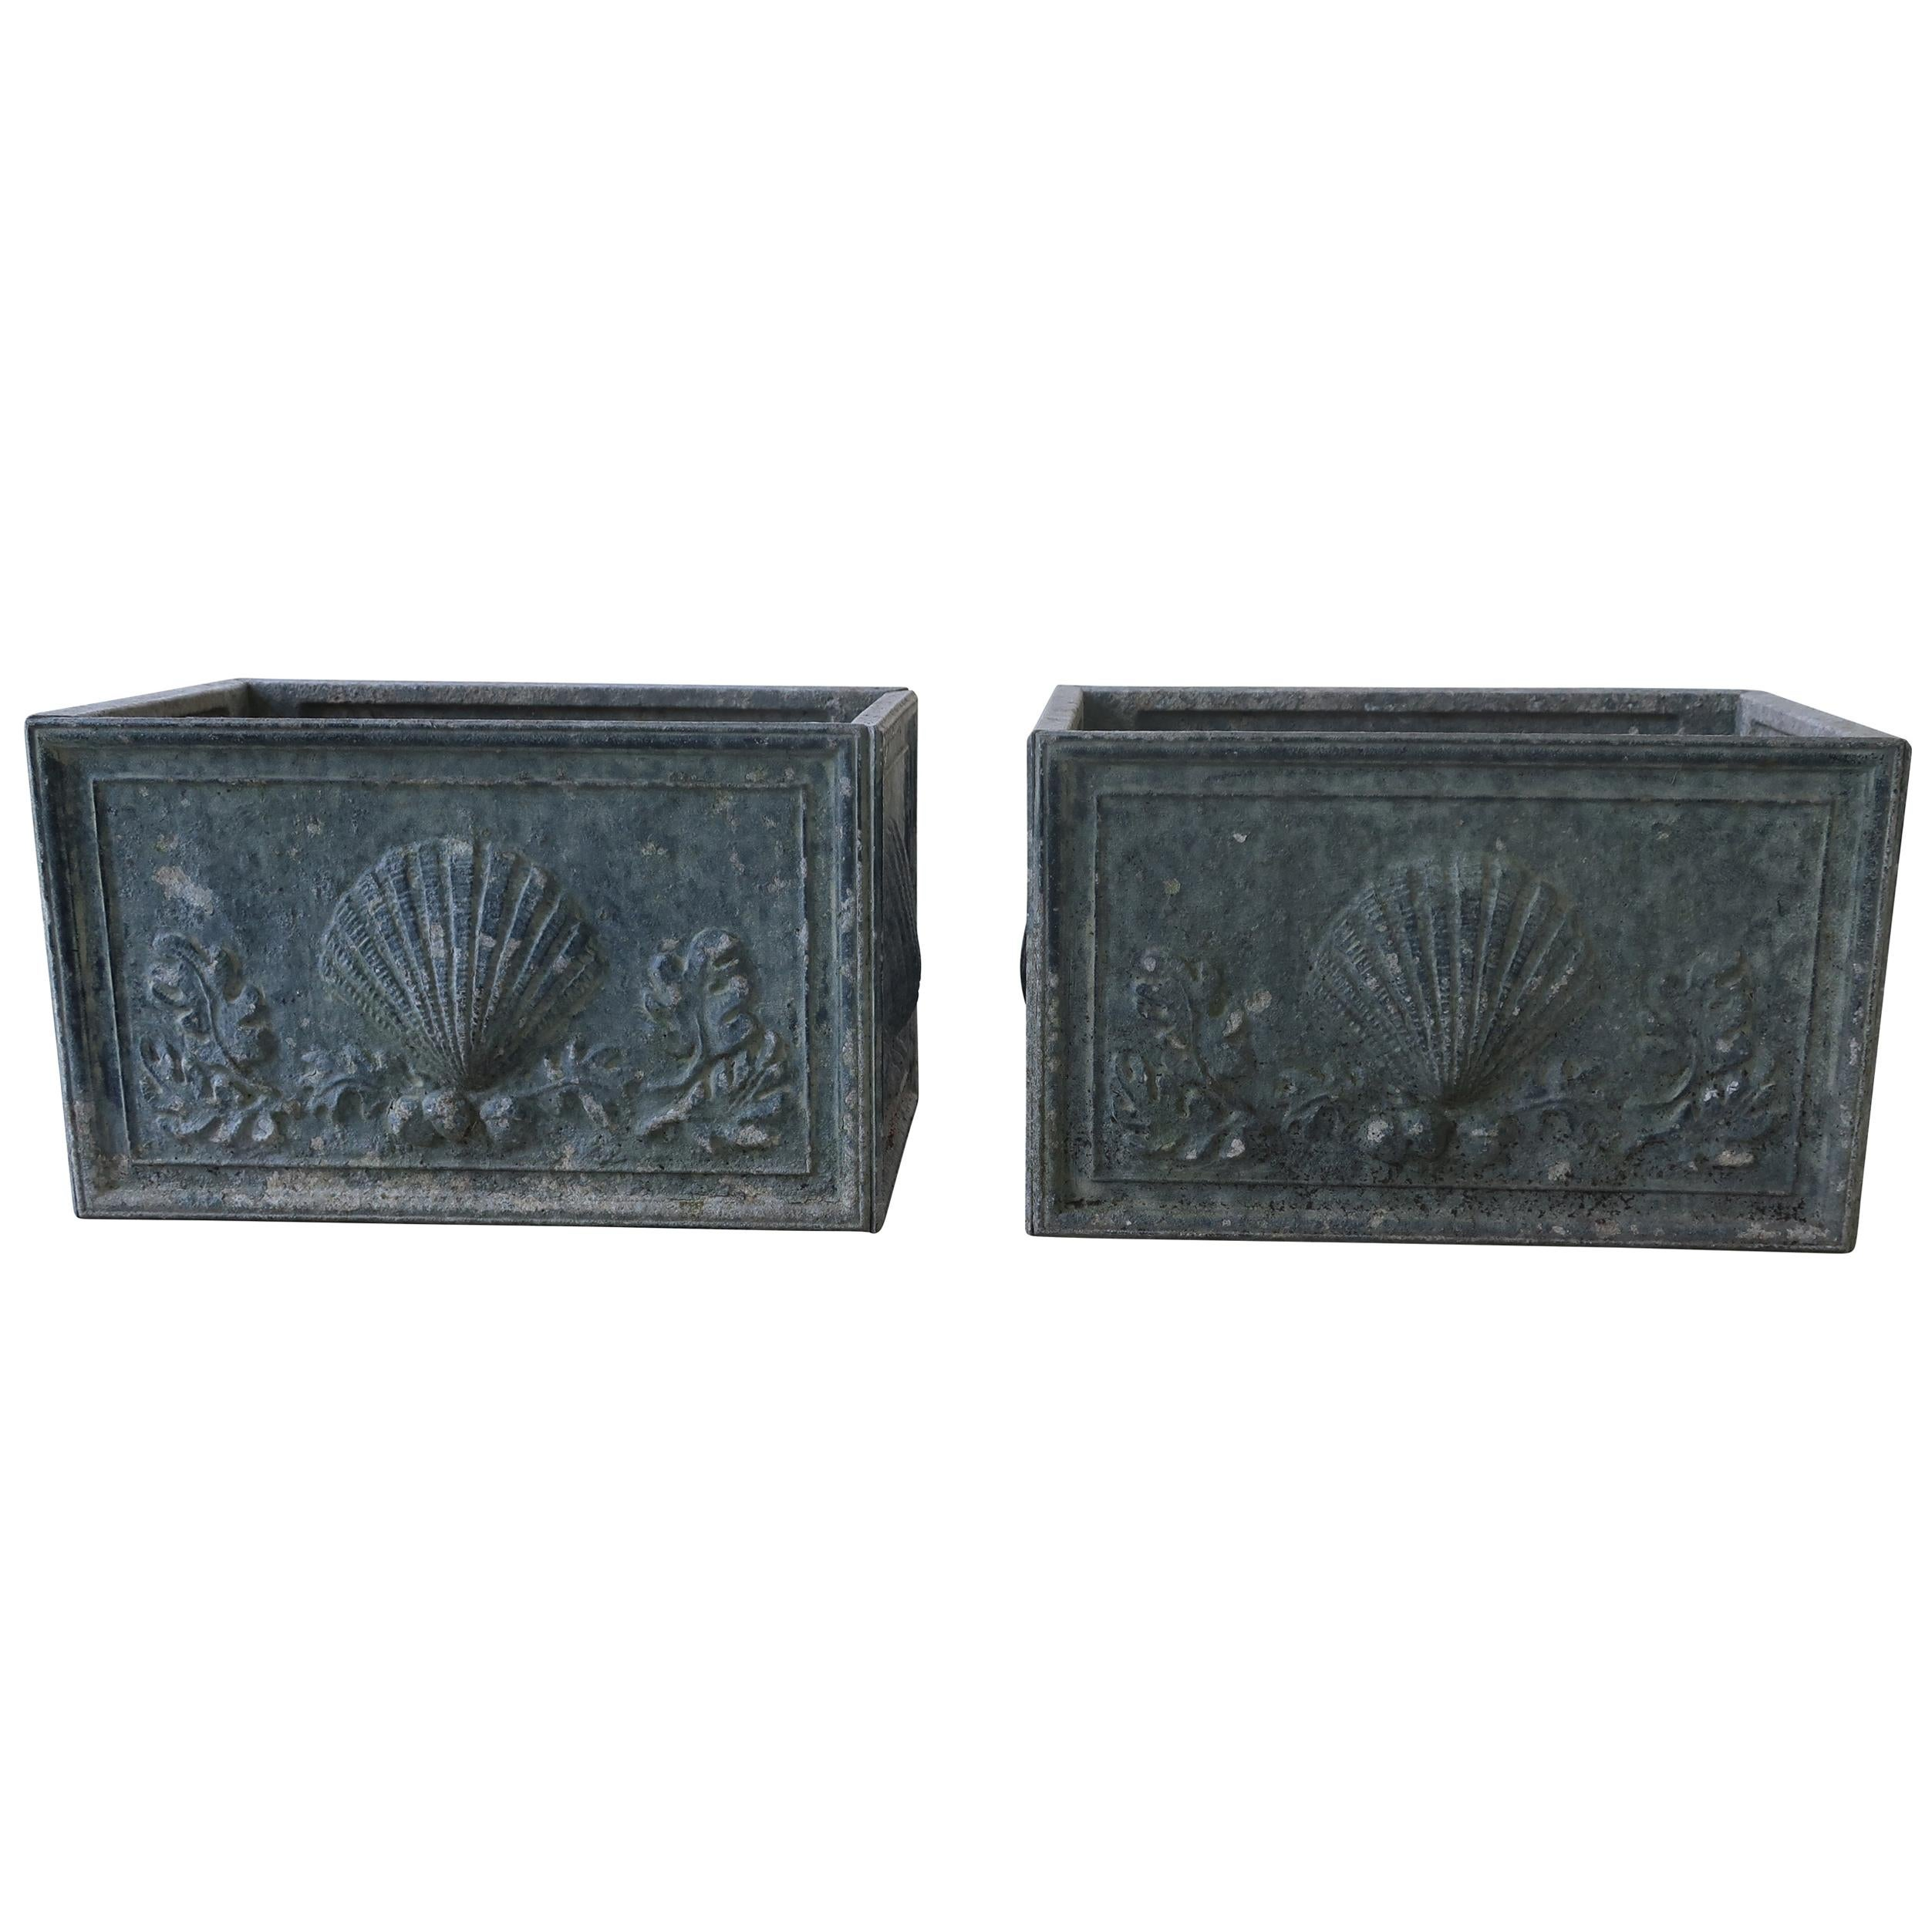 English Lead Grey Planters with Scallop Shell Motif, Pair